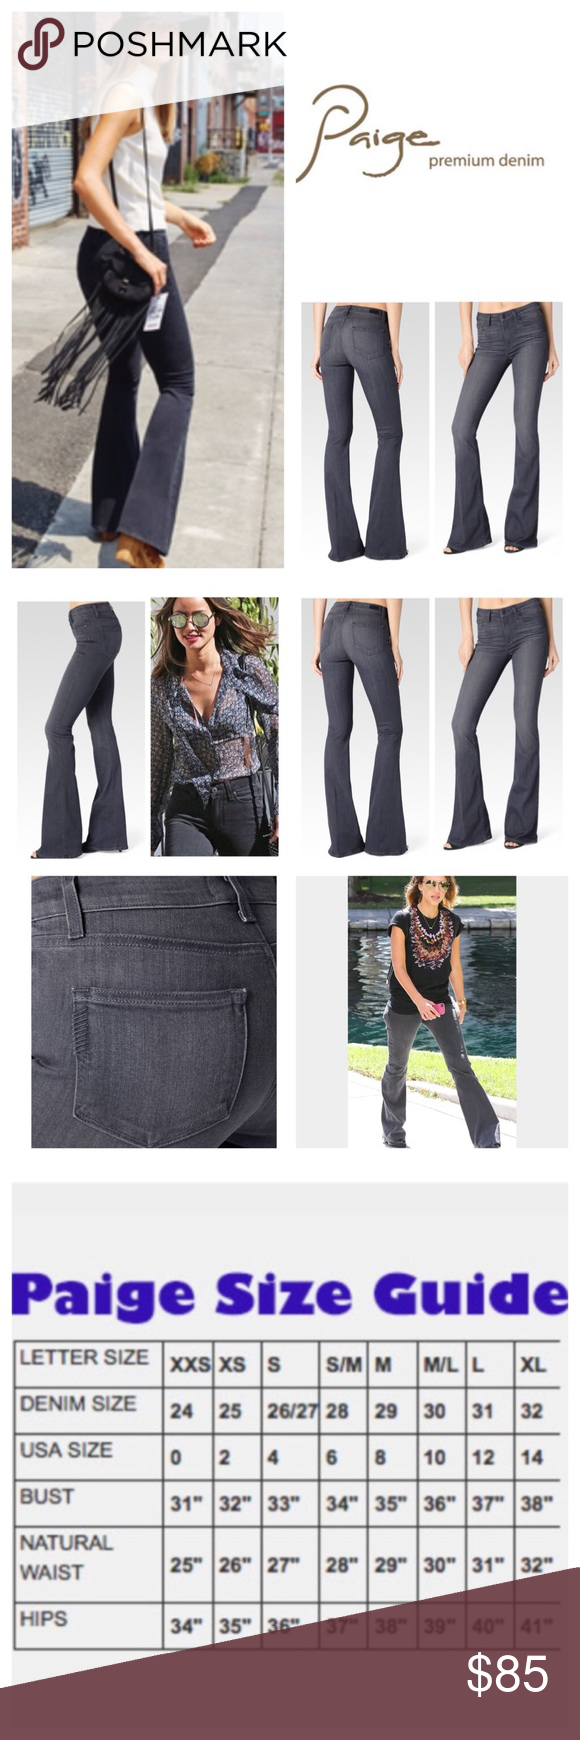 """Paige Gray High Rise Bell Canyon Jeans.  NWT. Paige Luna Gray High Rise  Bell Canyon Jeans, 54% rayon, 23% cotton, 22% polyester, 1% spandex, machine washable, 29"""" waist, 8.5"""" front rise, 14"""" back rise, 35.5"""" inseam, 21"""" leg opening (all around), five pockets, fading, whiskering, belt loops, zip fly button front closure, Paige signature leather patch and emblem on back, measurements are approx.  NO TRADES Paige Jeans Jeans Flare & Wide Leg"""